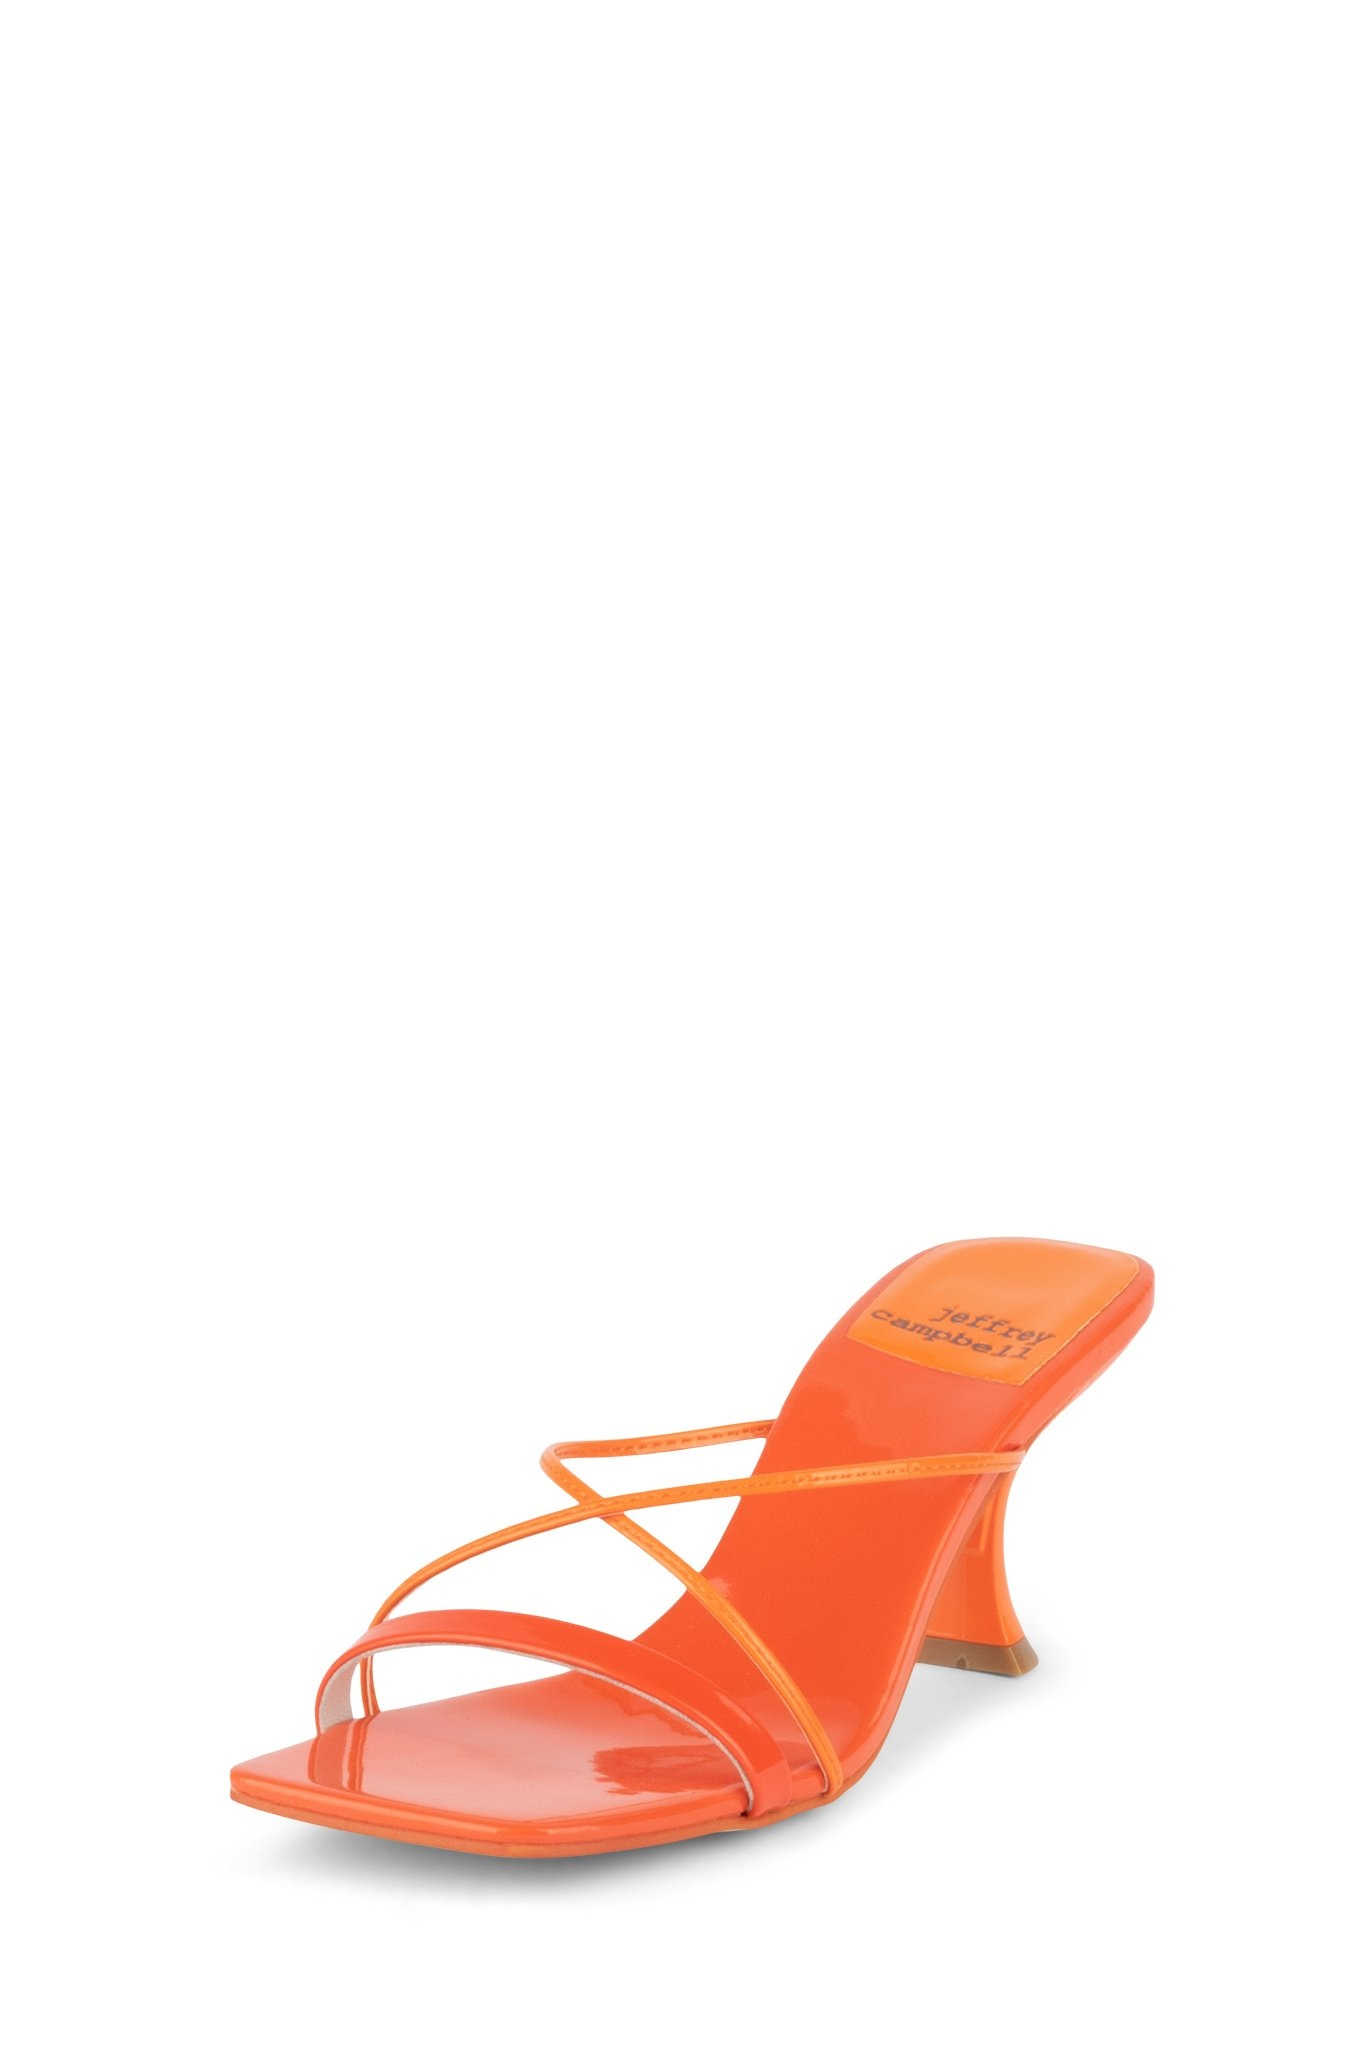 Jeffrey Campbell Mural-2 Orange Slide